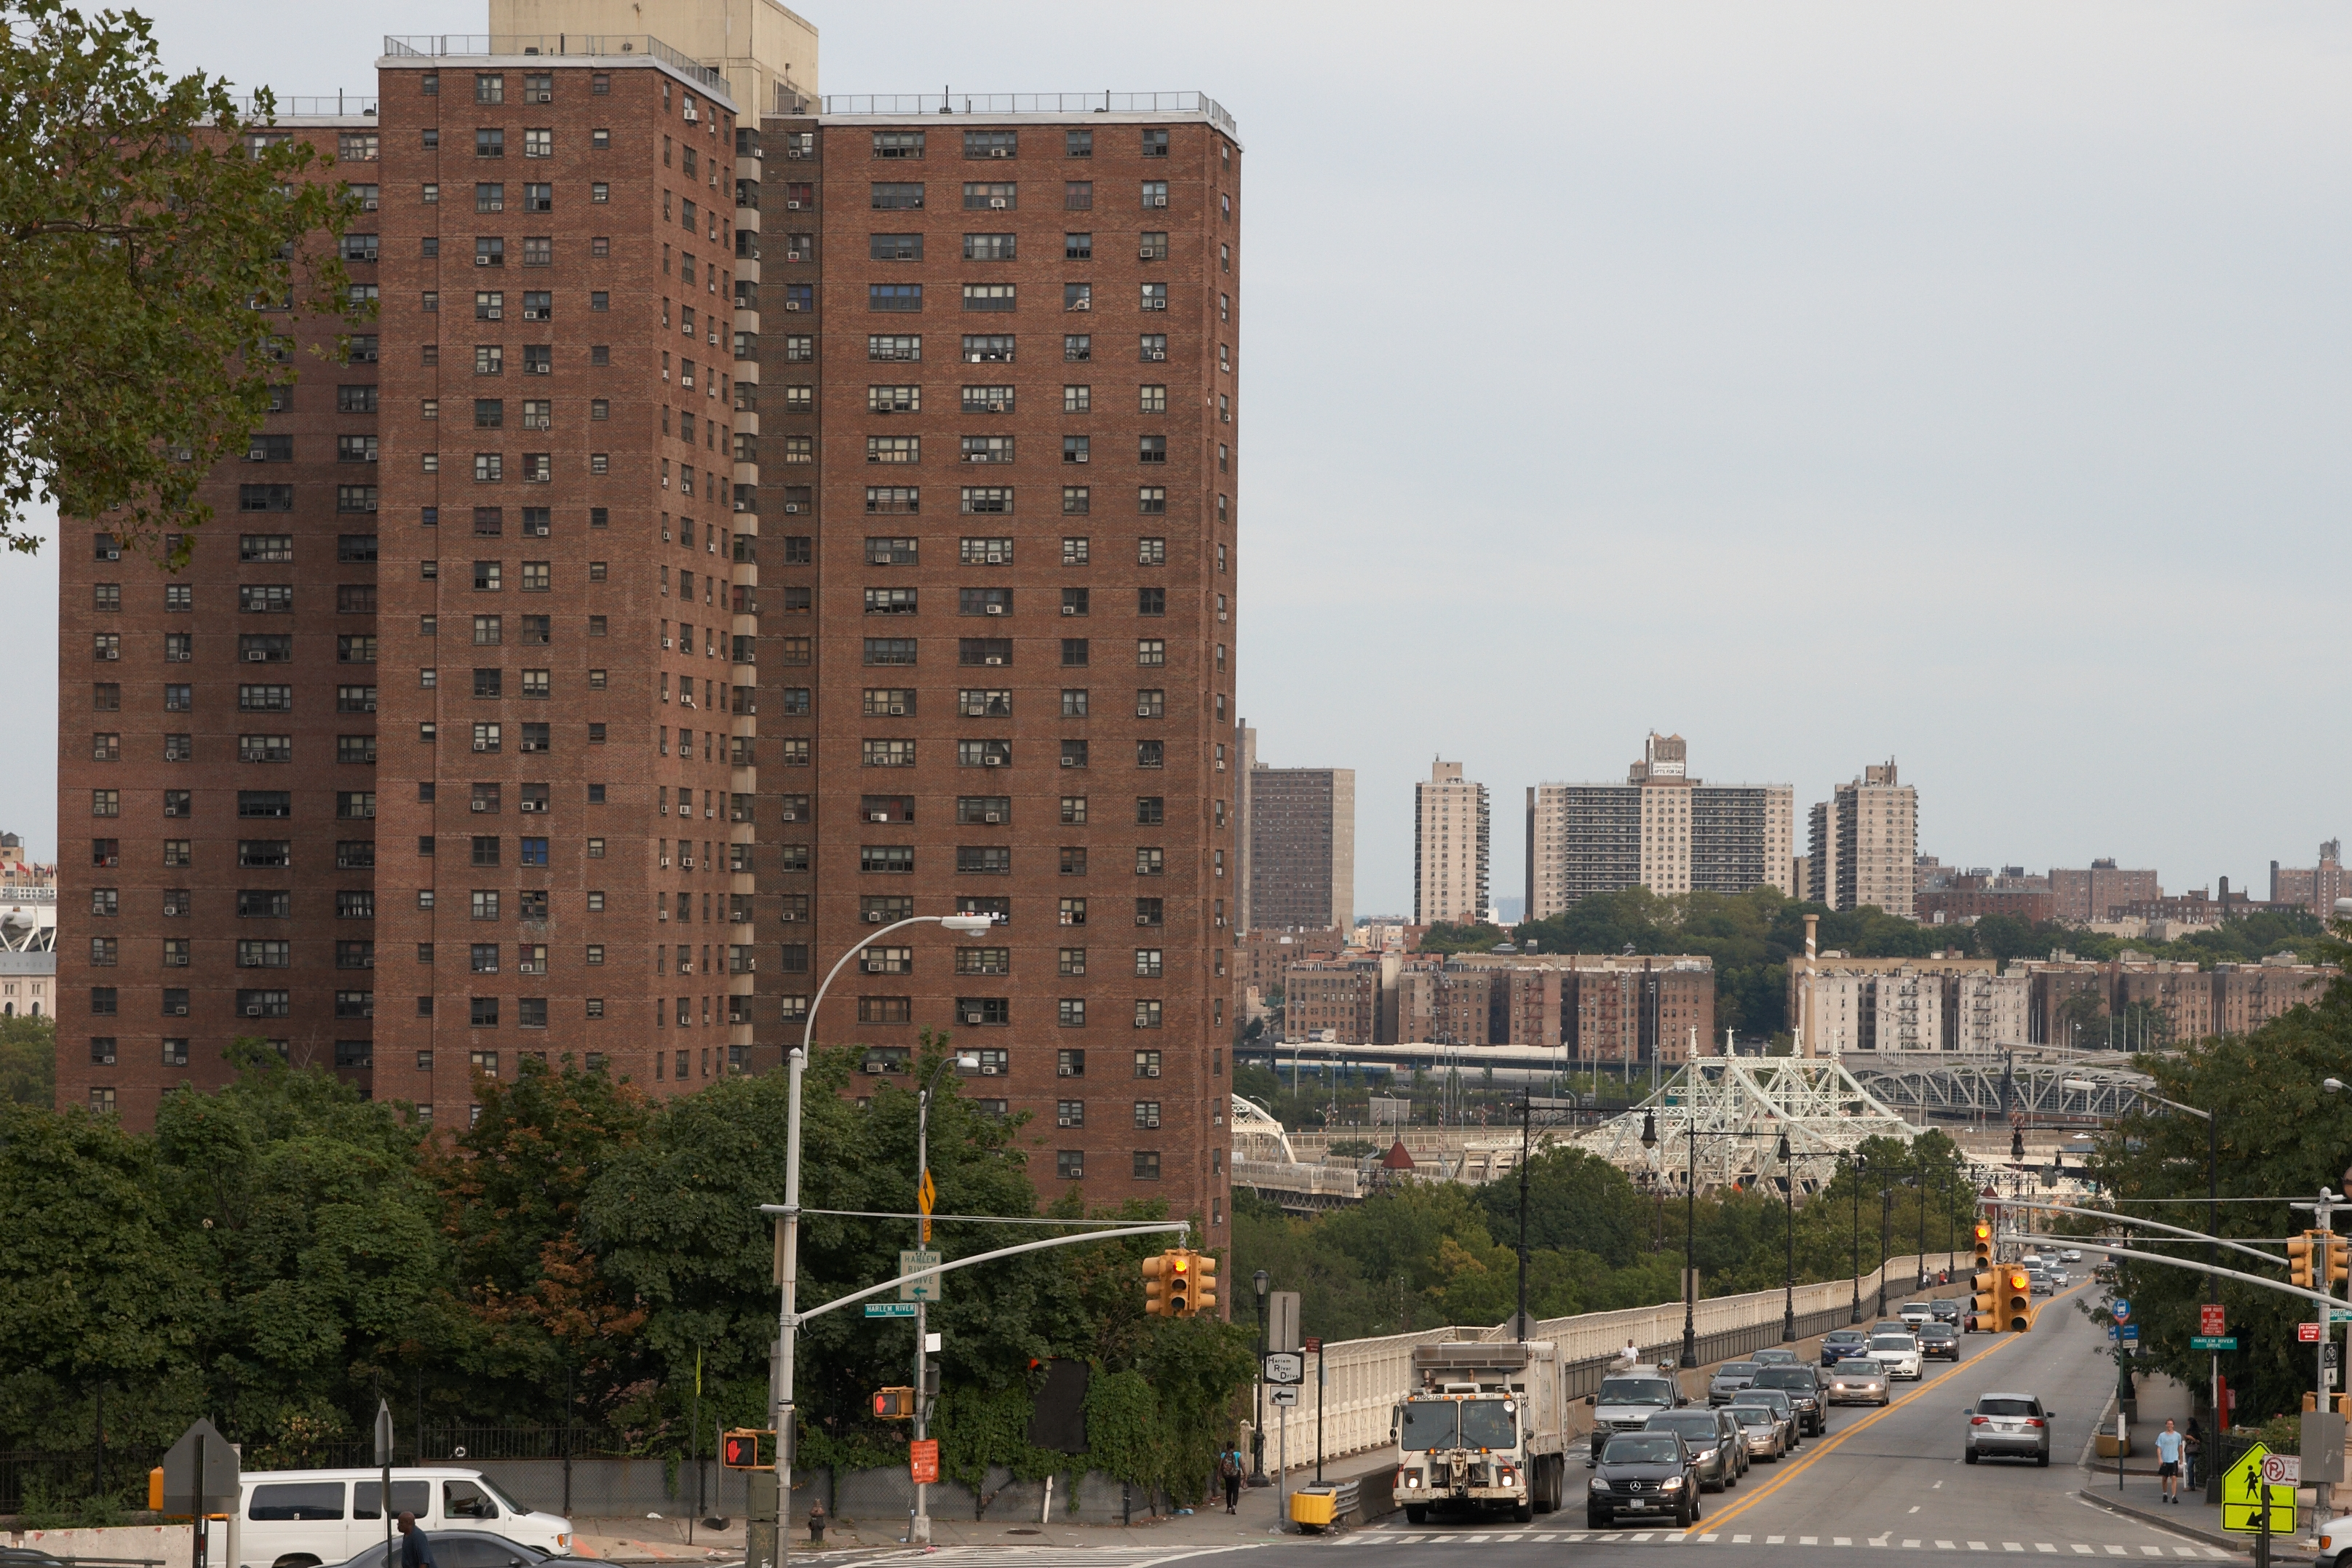 FilePolo Grounds Towers at W 155th St Manhattanjpg